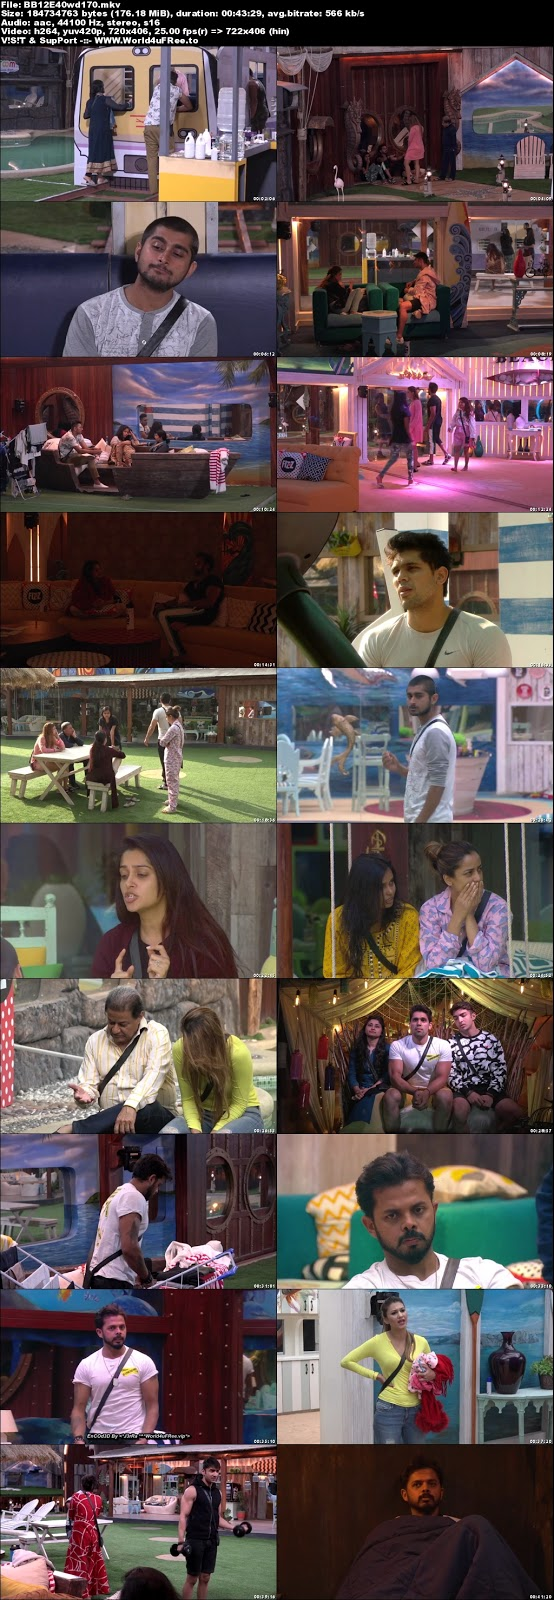 Bigg Boss 12 Episode 40 26 October 2018 WEBRip 480p 170Mb x264 world4ufree.fun tv show Episode 40 26 October 2018 world4ufree.fun 200mb 250mb 300mb compressed small size free download or watch online at world4ufree.fun